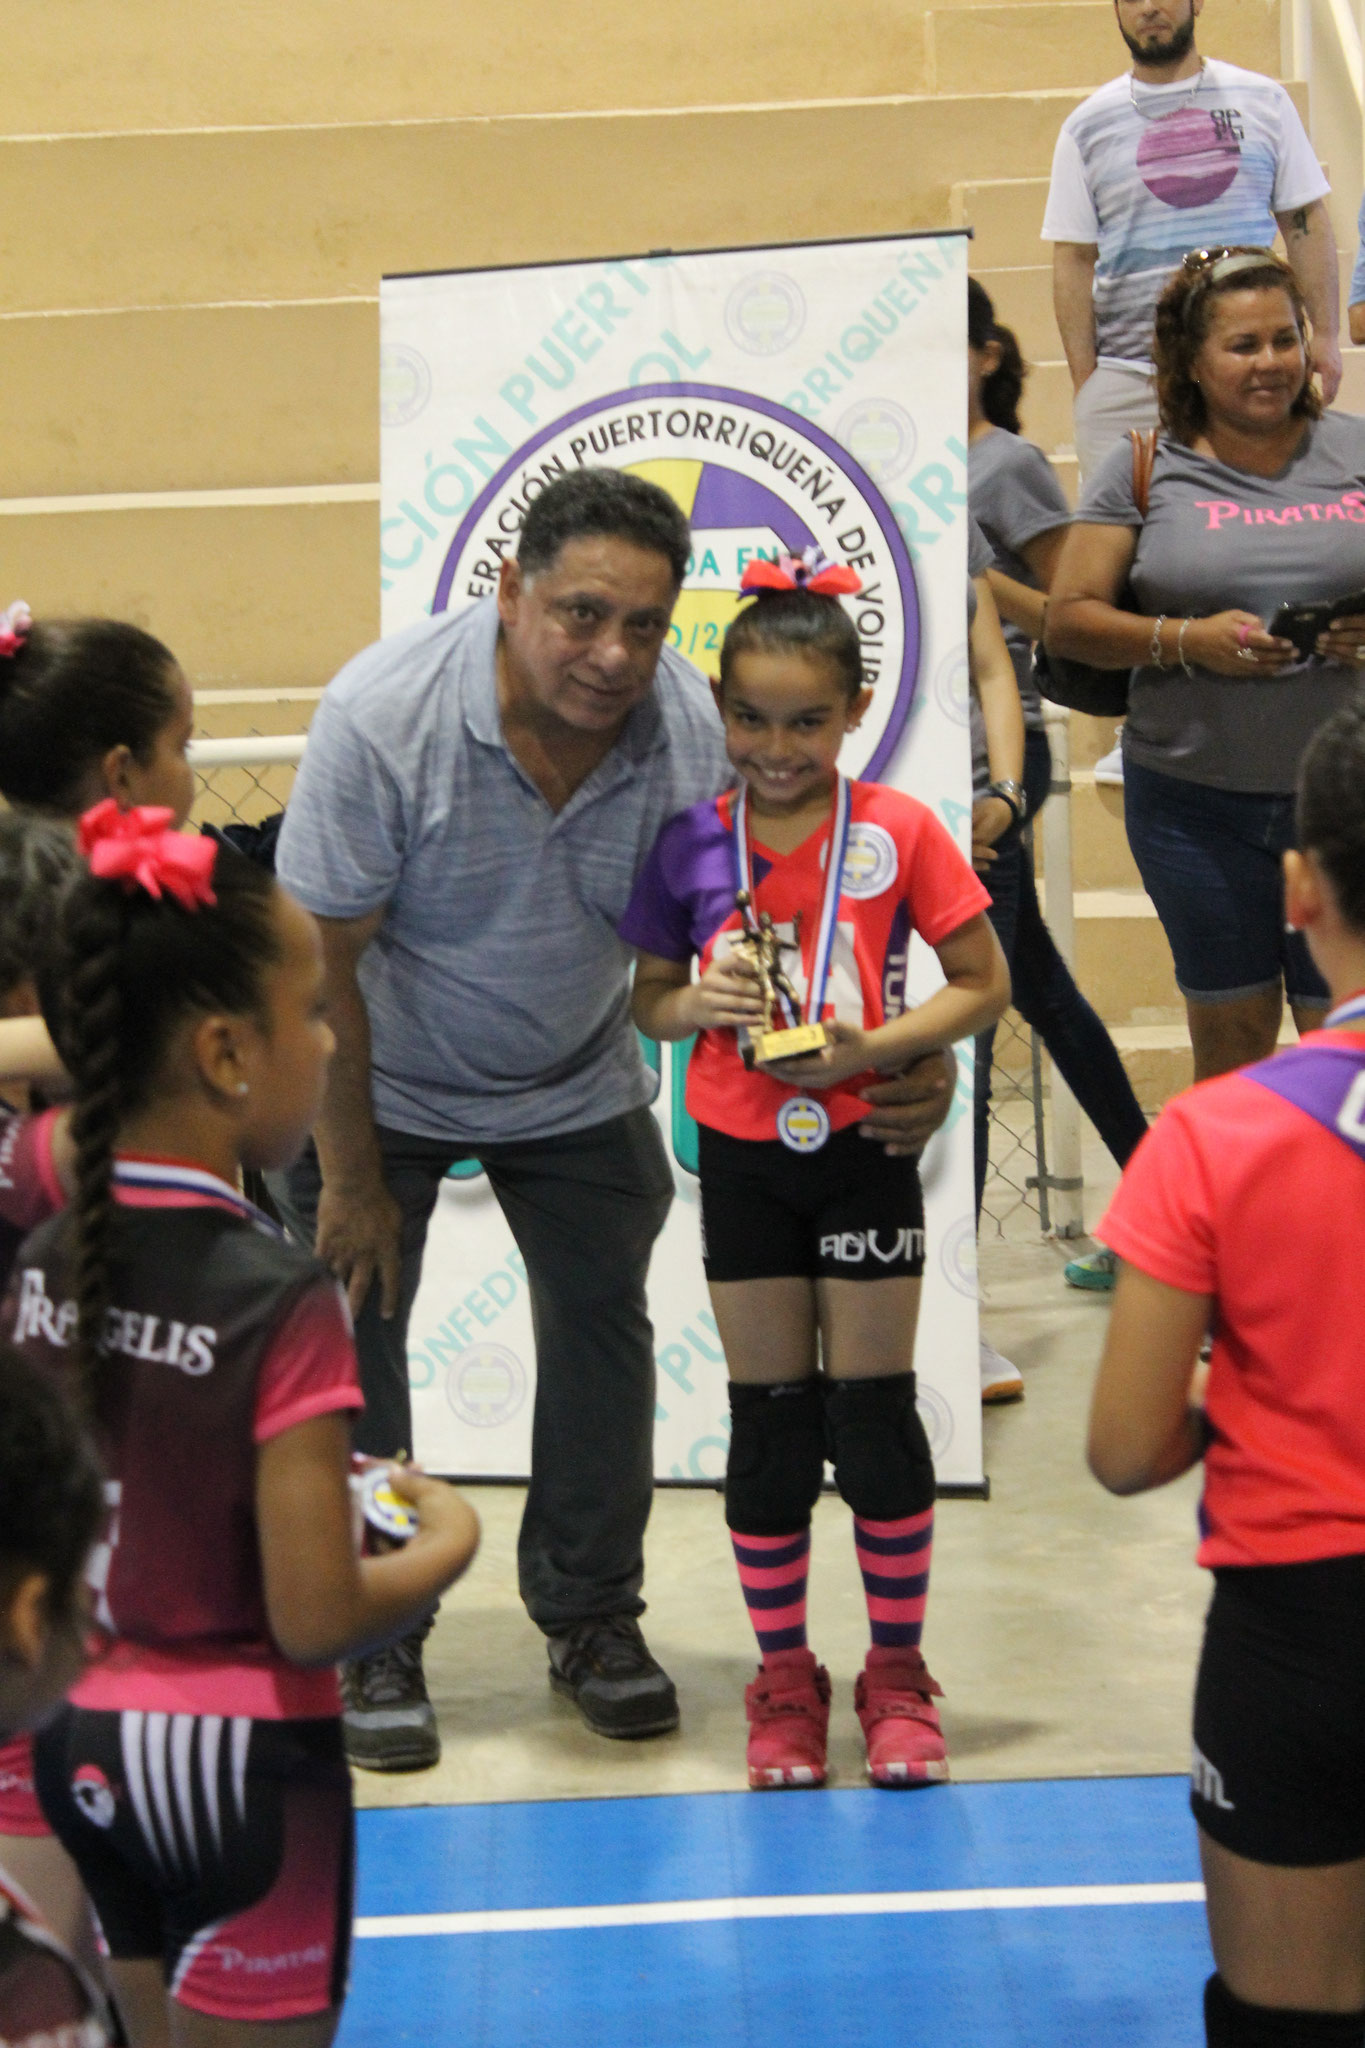 NOELAIRYS BLANCO MVP 2016 CATEGORIA 7 -8 AÑOS